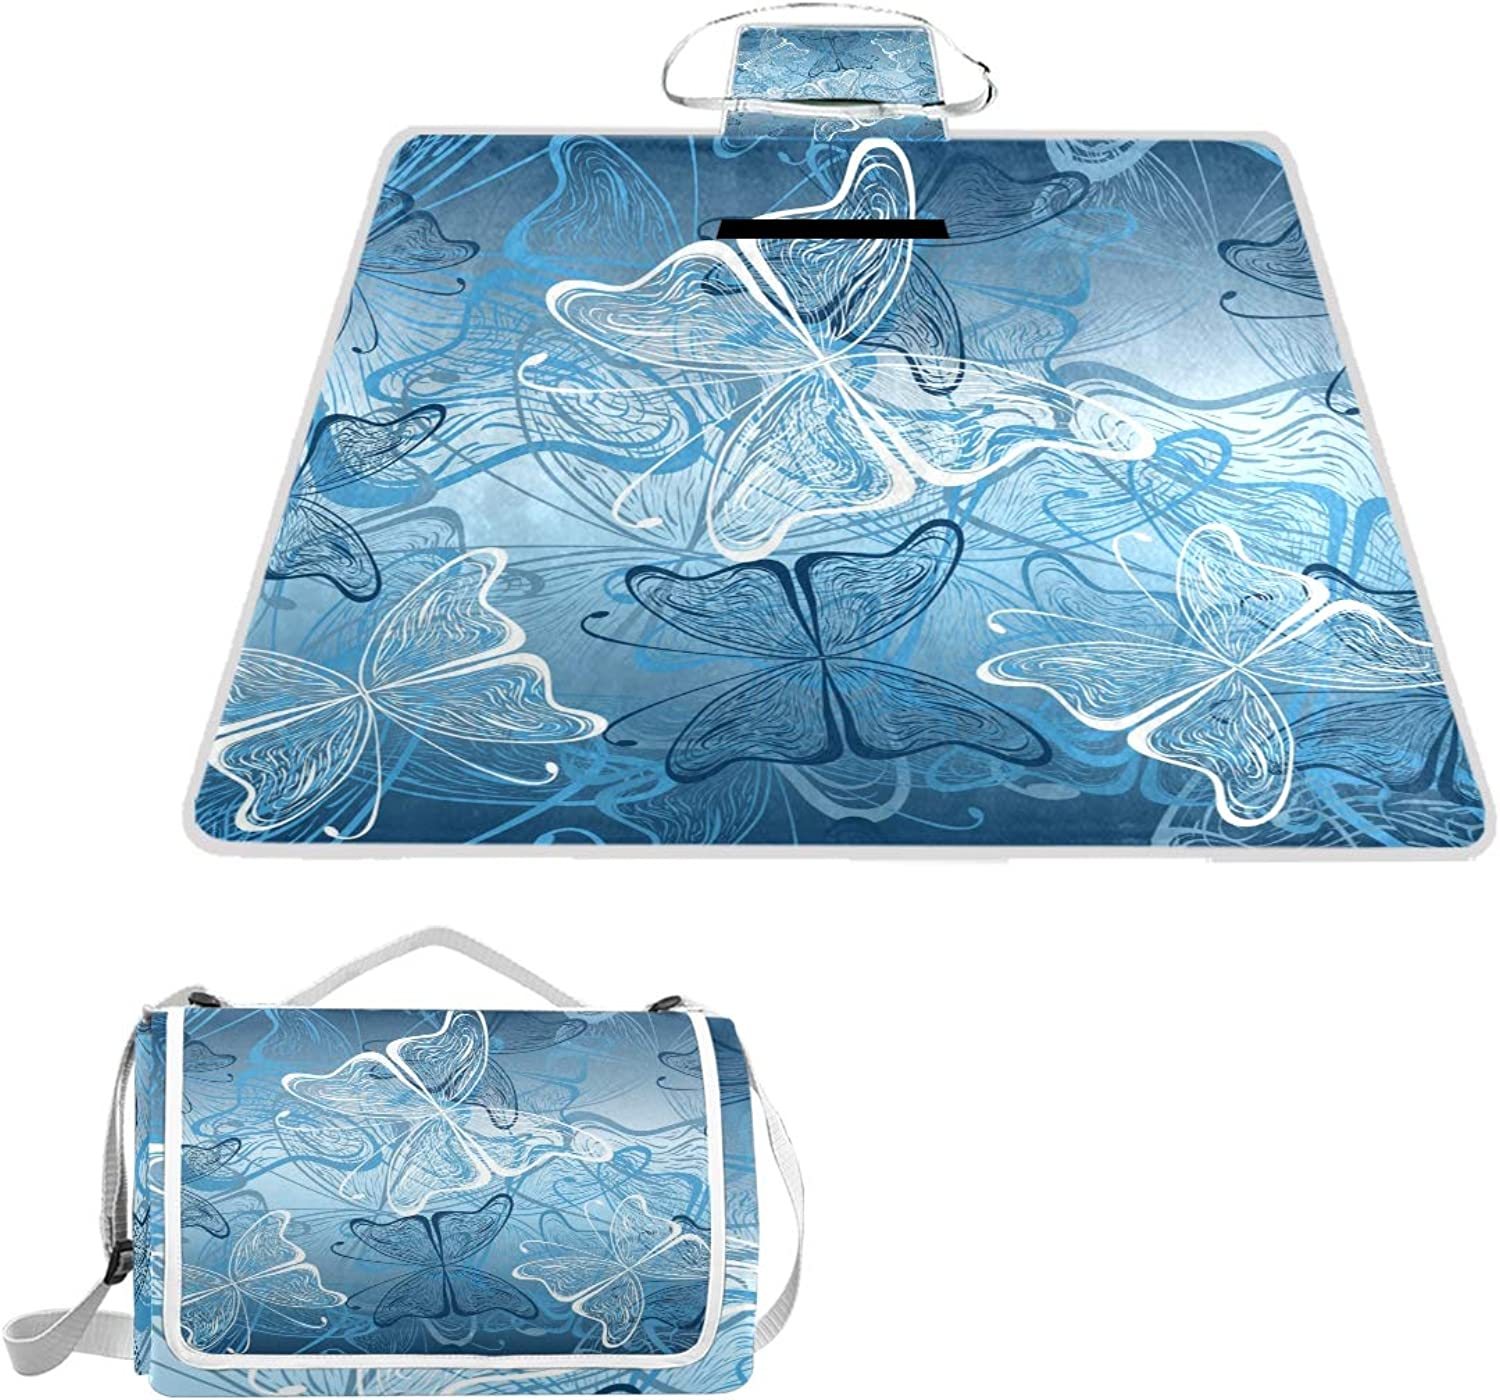 MASSIKOA Butterflies Picnic Blanket Waterproof Outdoor Blanket Foldable Picnic Handy Mat Tote for Beach Camping Hiking